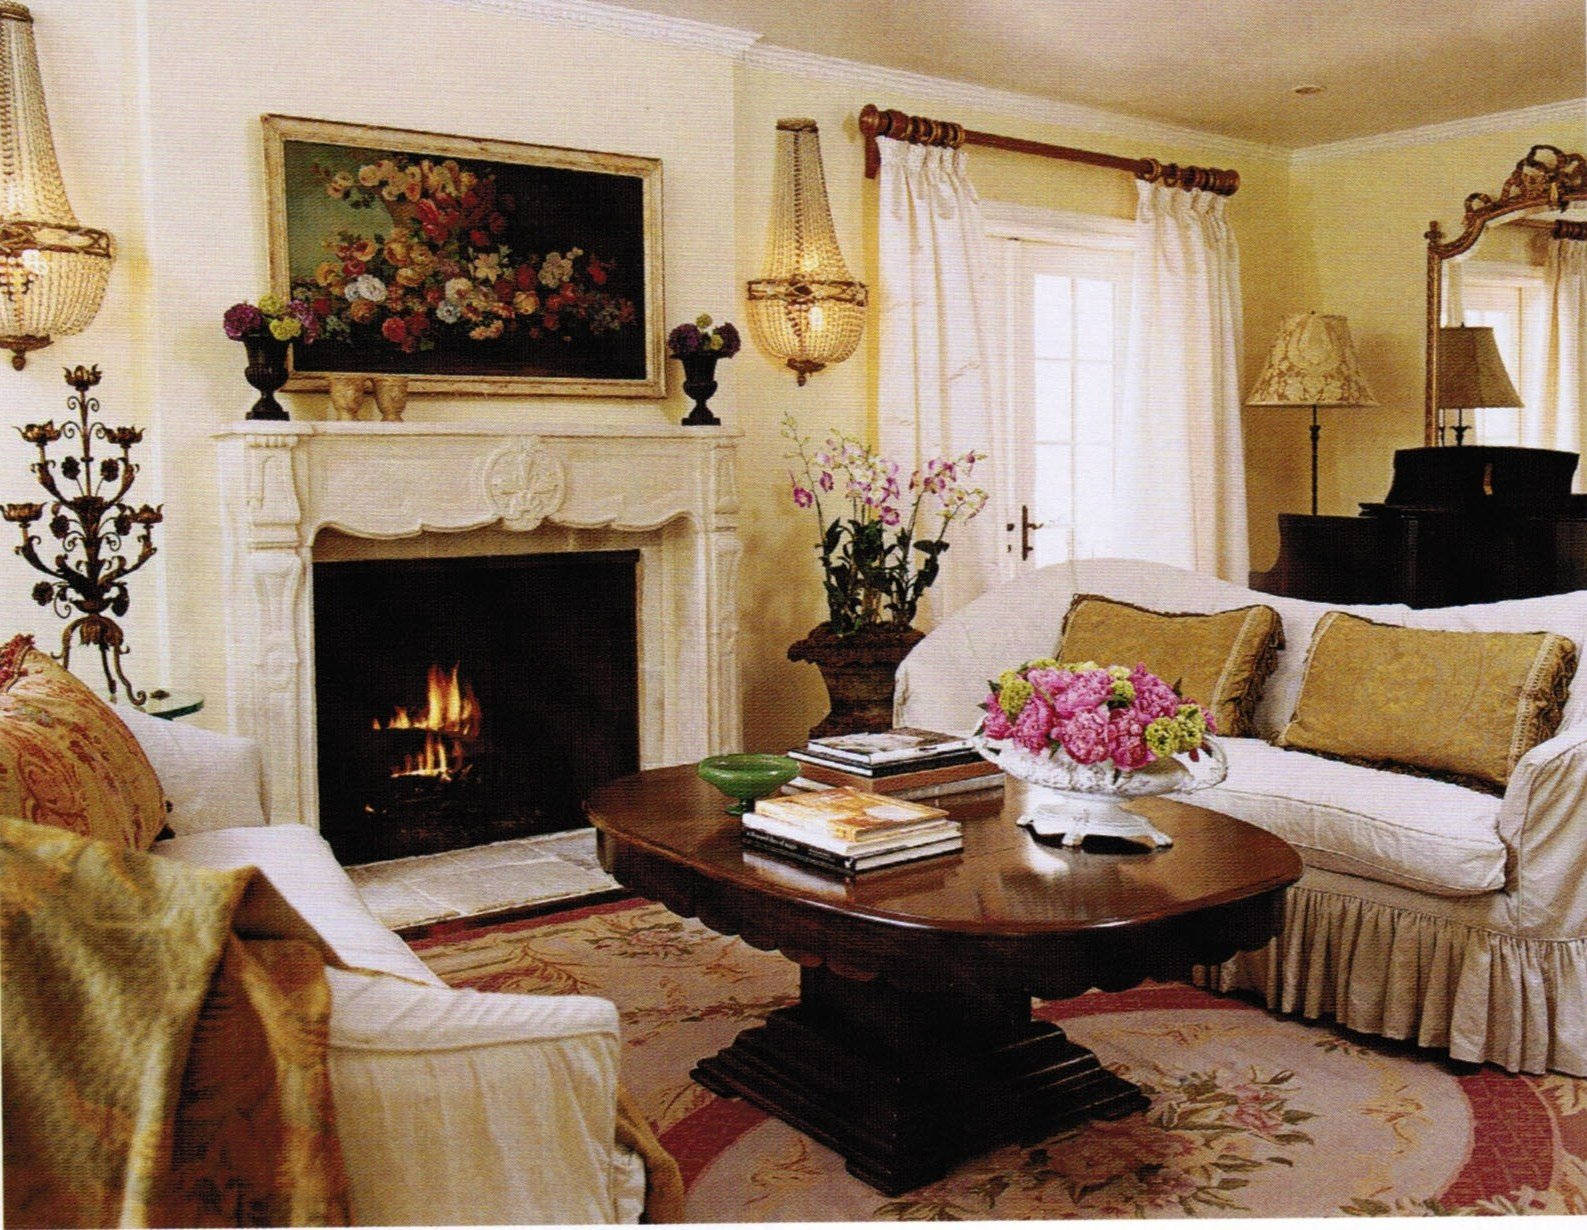 French Country Decor Living Room New Maison Decor French Country Enchanting Yellow & White